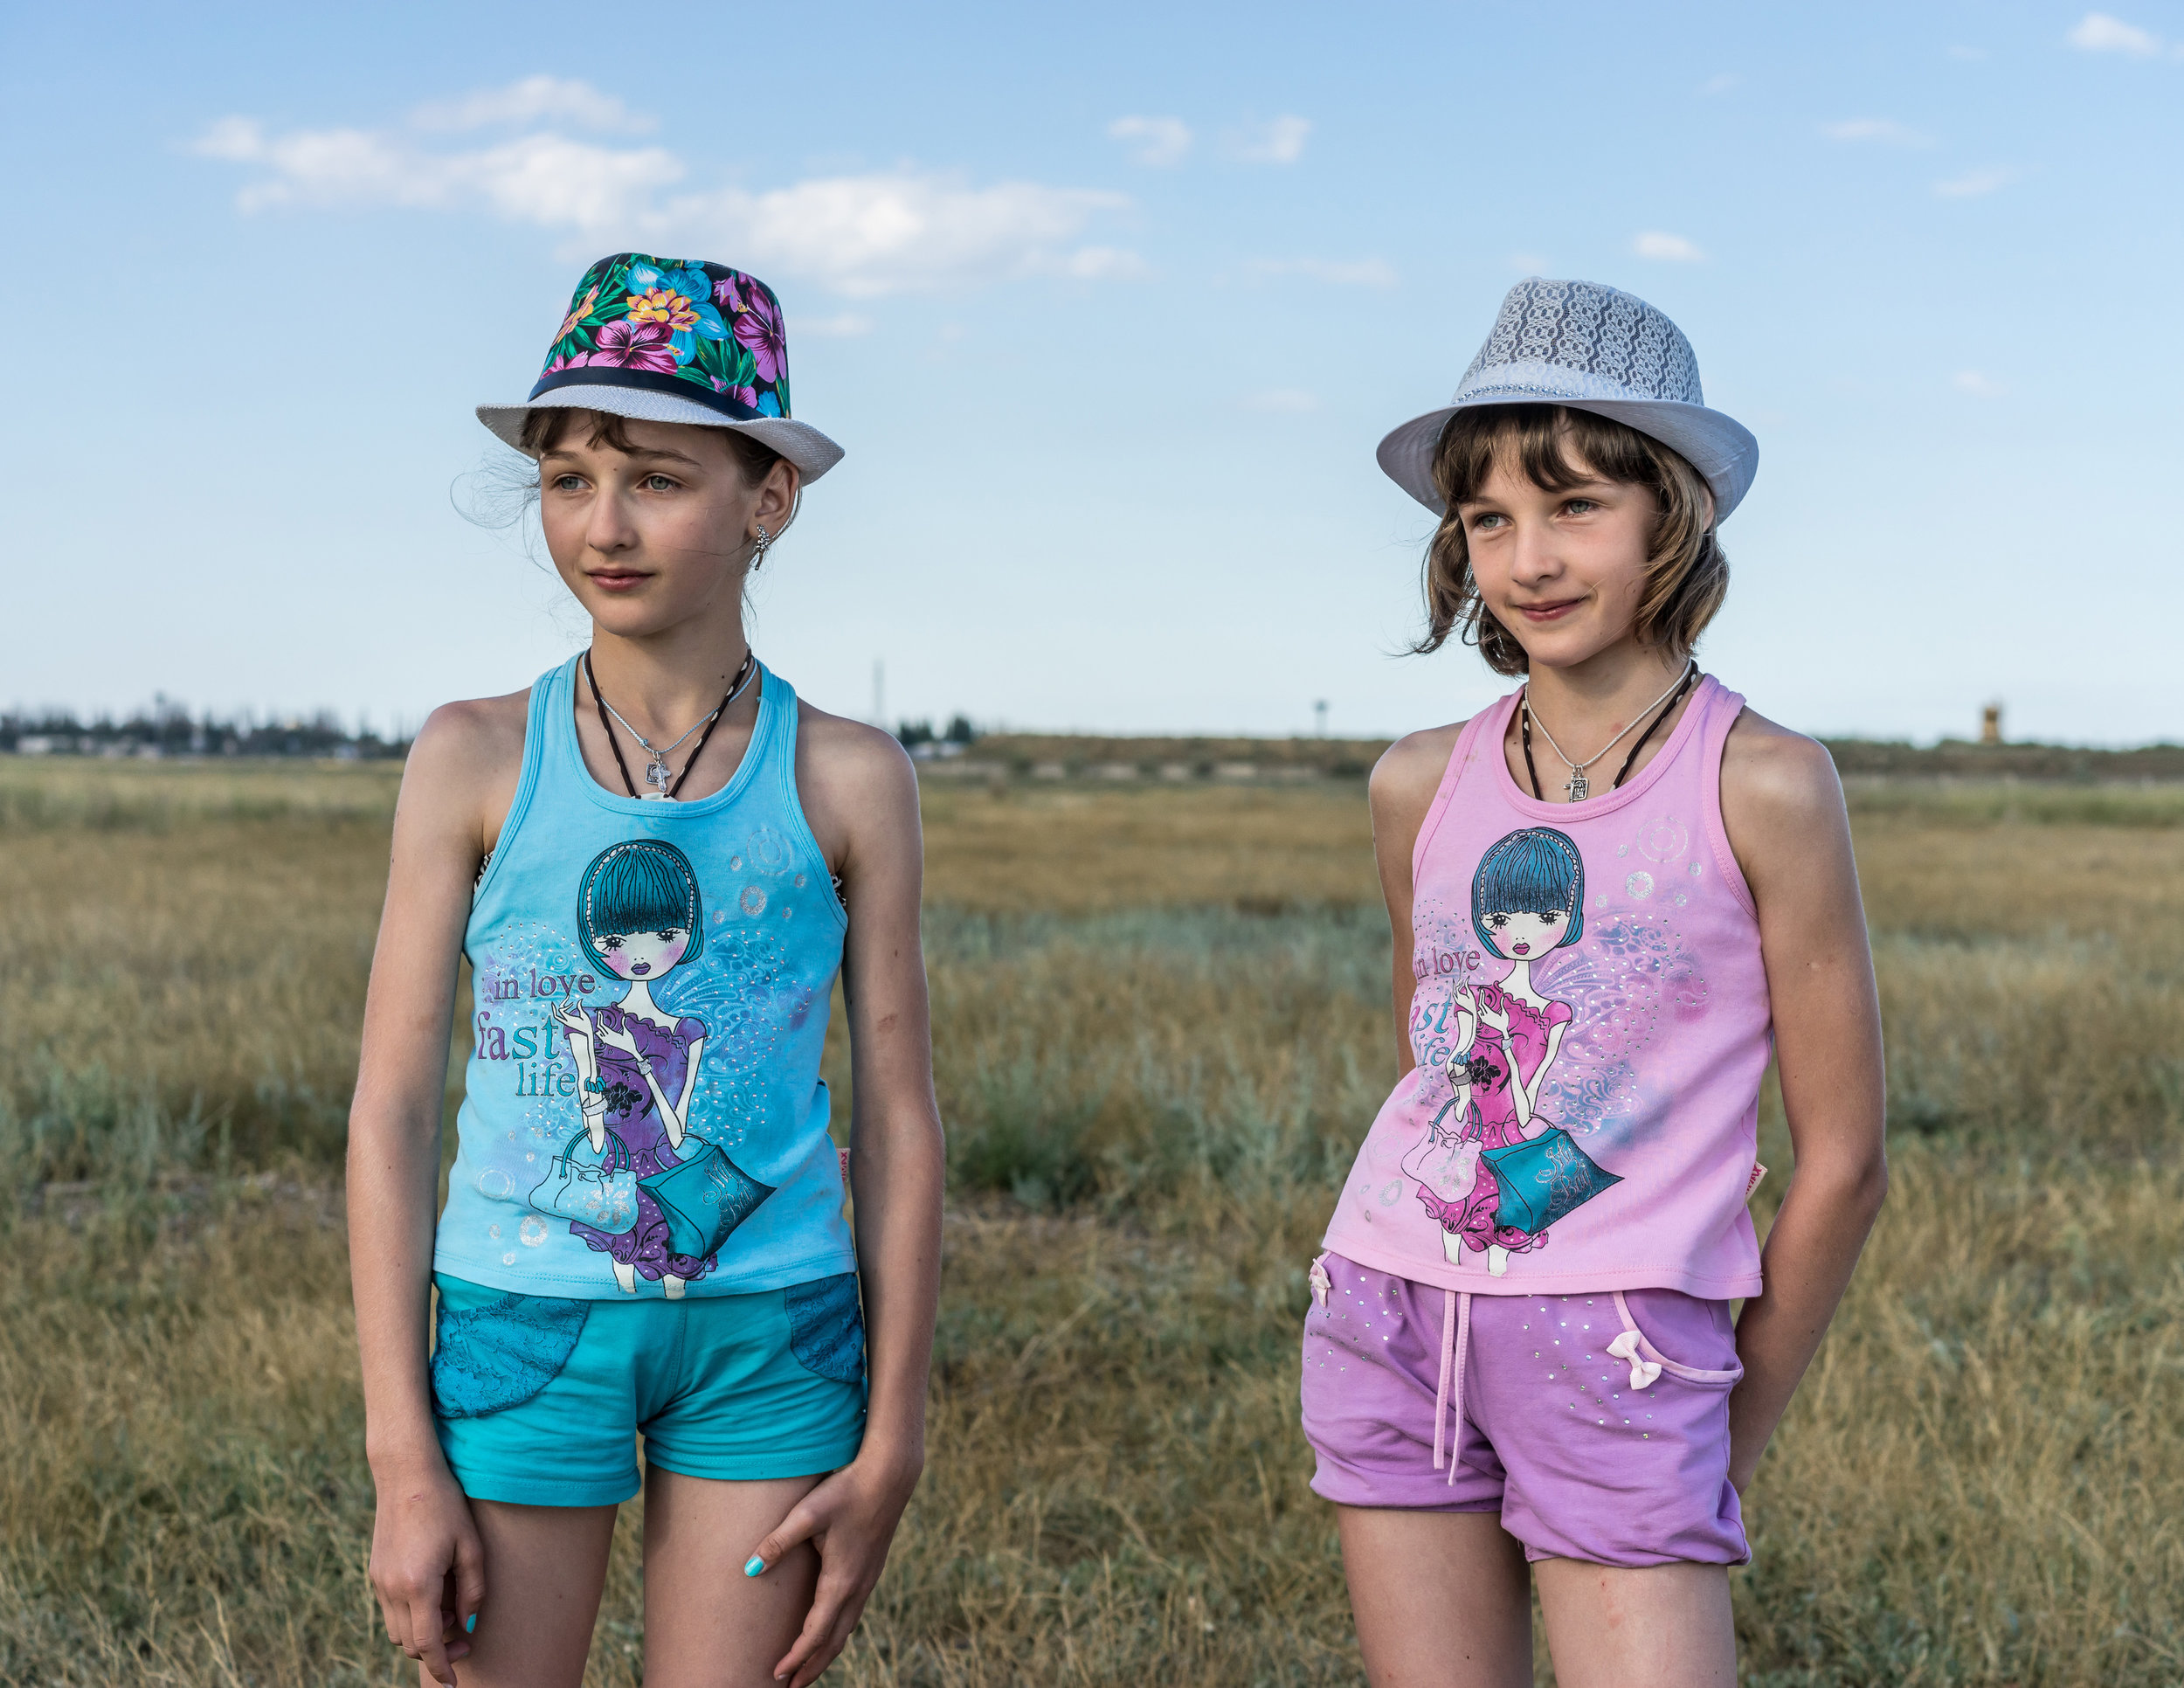 OKSANA PARAFENIUK  www.oksanaparafeniuk.com  |  @oksana_par   Twin sisters Tania, left, and Olia, 11 years old, from the Khmelnytskyi region in Ukraine pose for a portrait while on vacation near the salt lake on Arabat Spit on July 2, 2018. The Arabat Spit is a narrow strip of land which separates a system of lagoons named Syvash from the Sea of Azov.